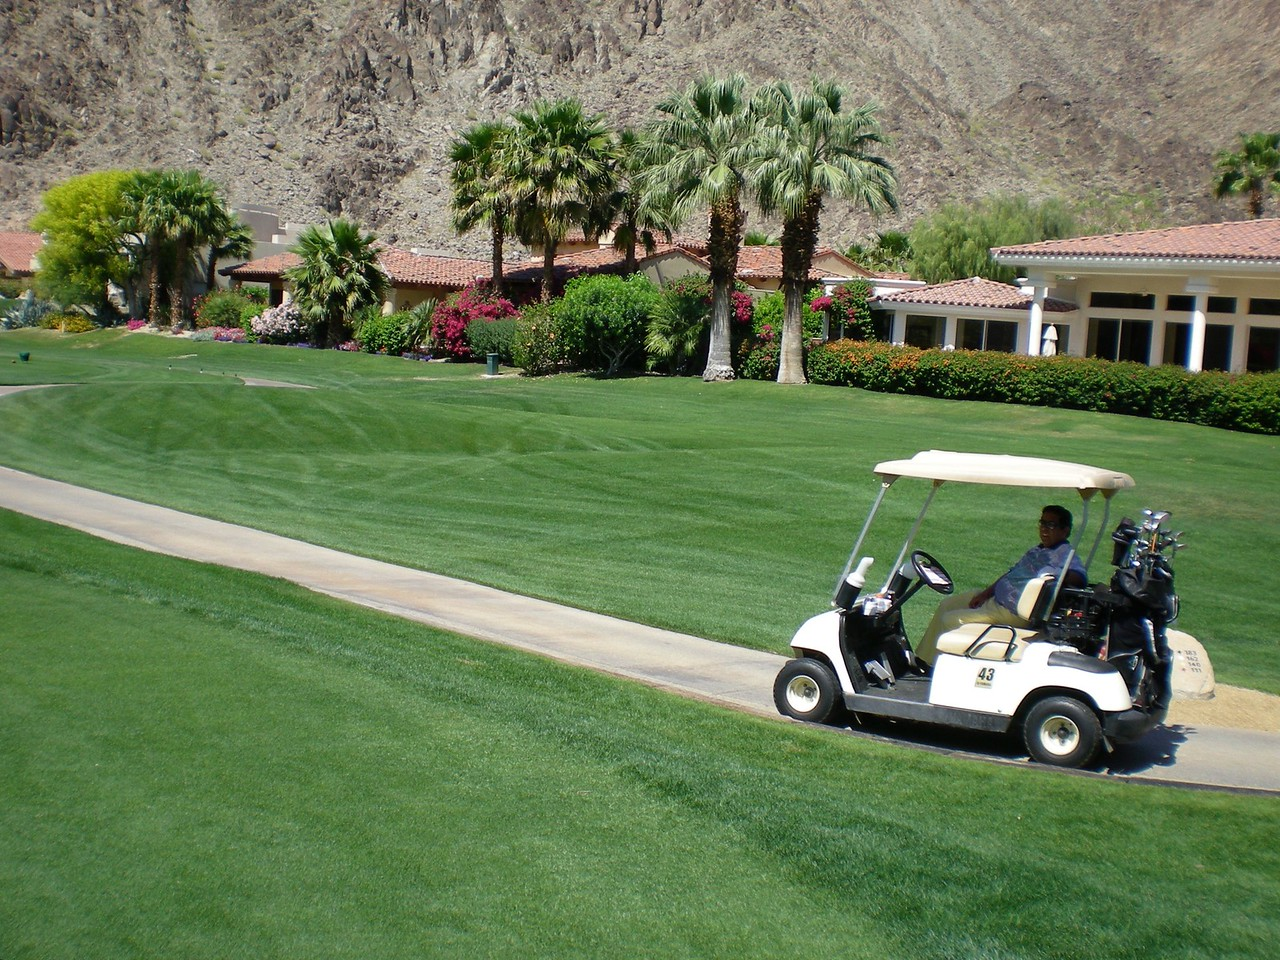 March 26, 2008, played golf with Dan, Paul, Joaquin and myself at La Quinta Resort Golf Course